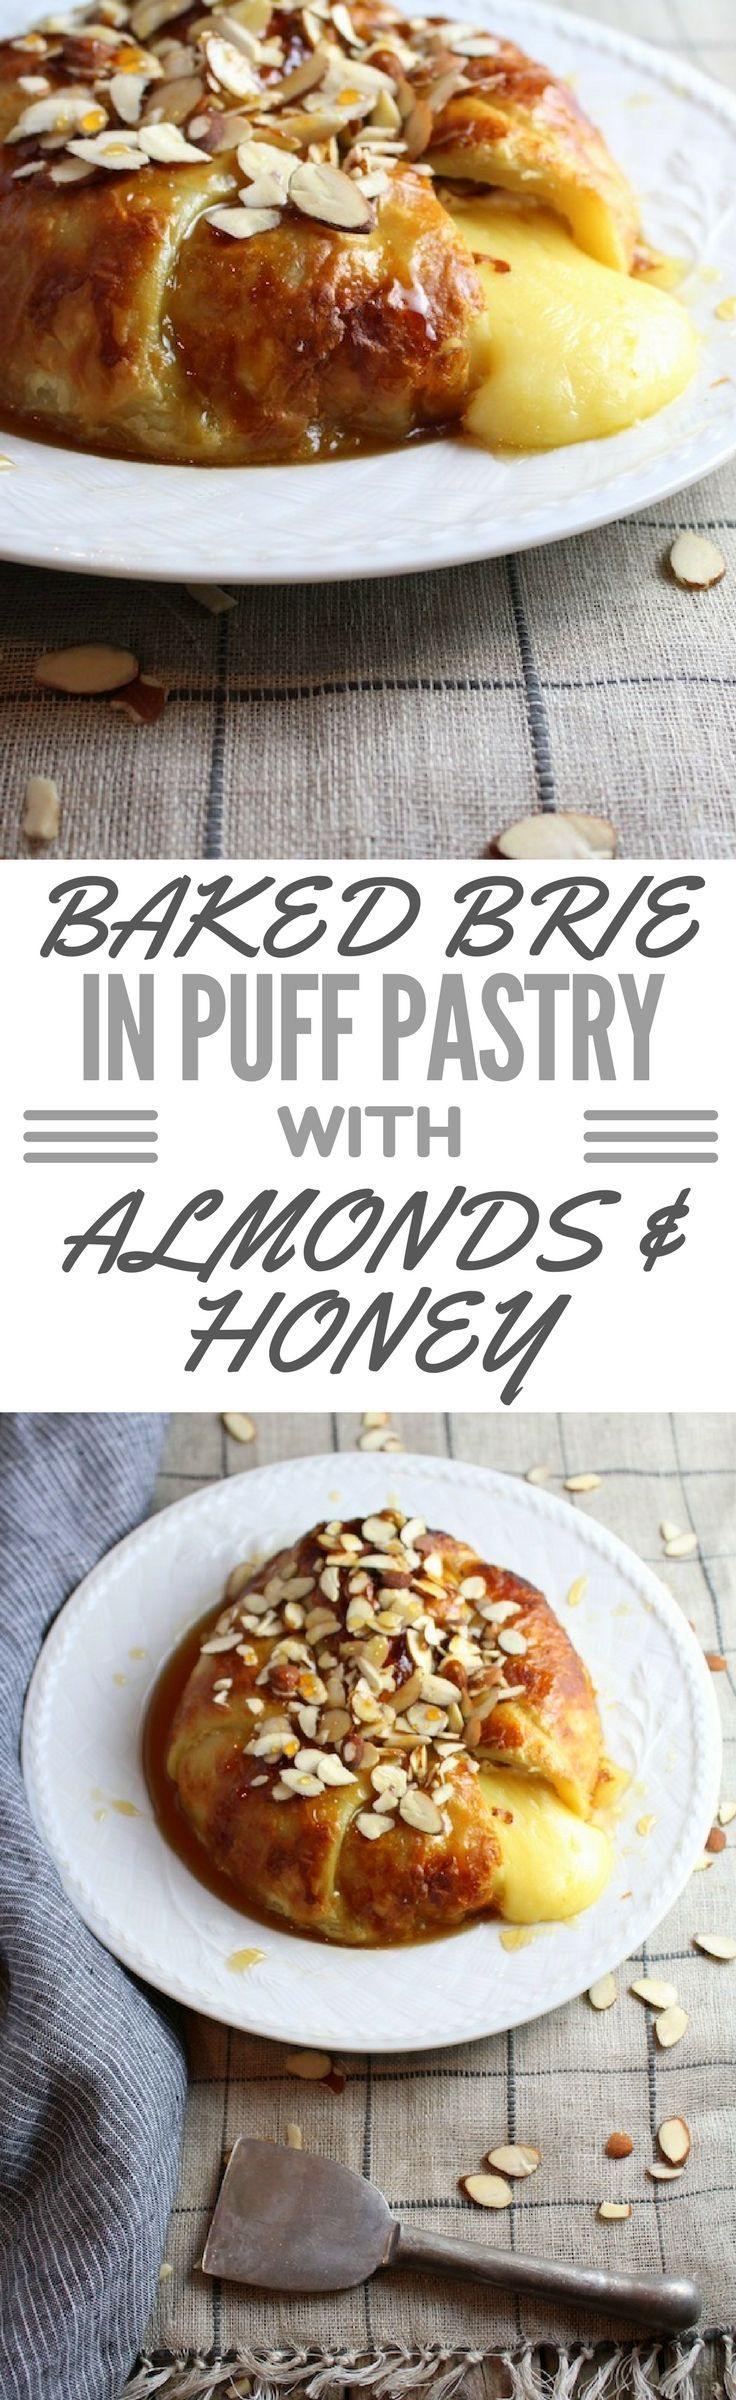 A delicious & easy appetizer – your search is over. Baked #Brie swaddled in Puff Pastry with sliced Almonds and Honey drizzle is really to live for!